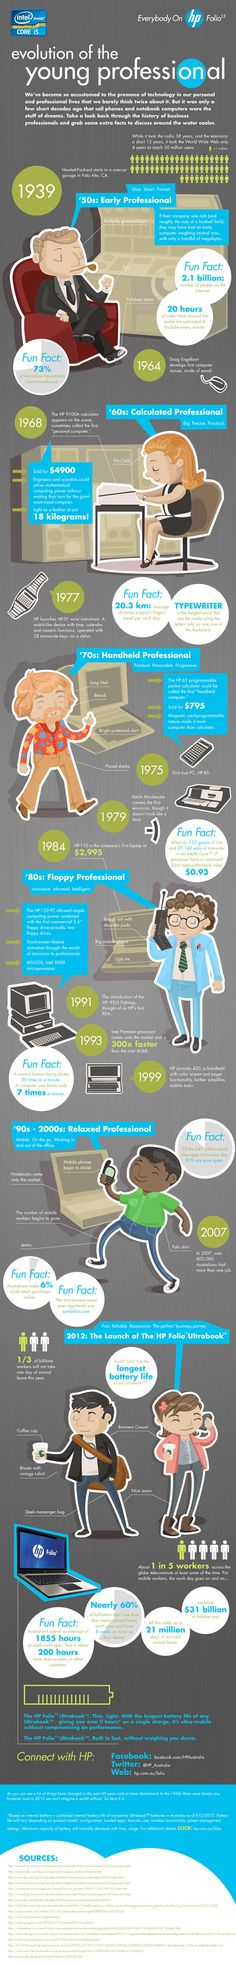 How Has The Evolution of Young Professionals Been Affected By Changes In Technology? #infographic